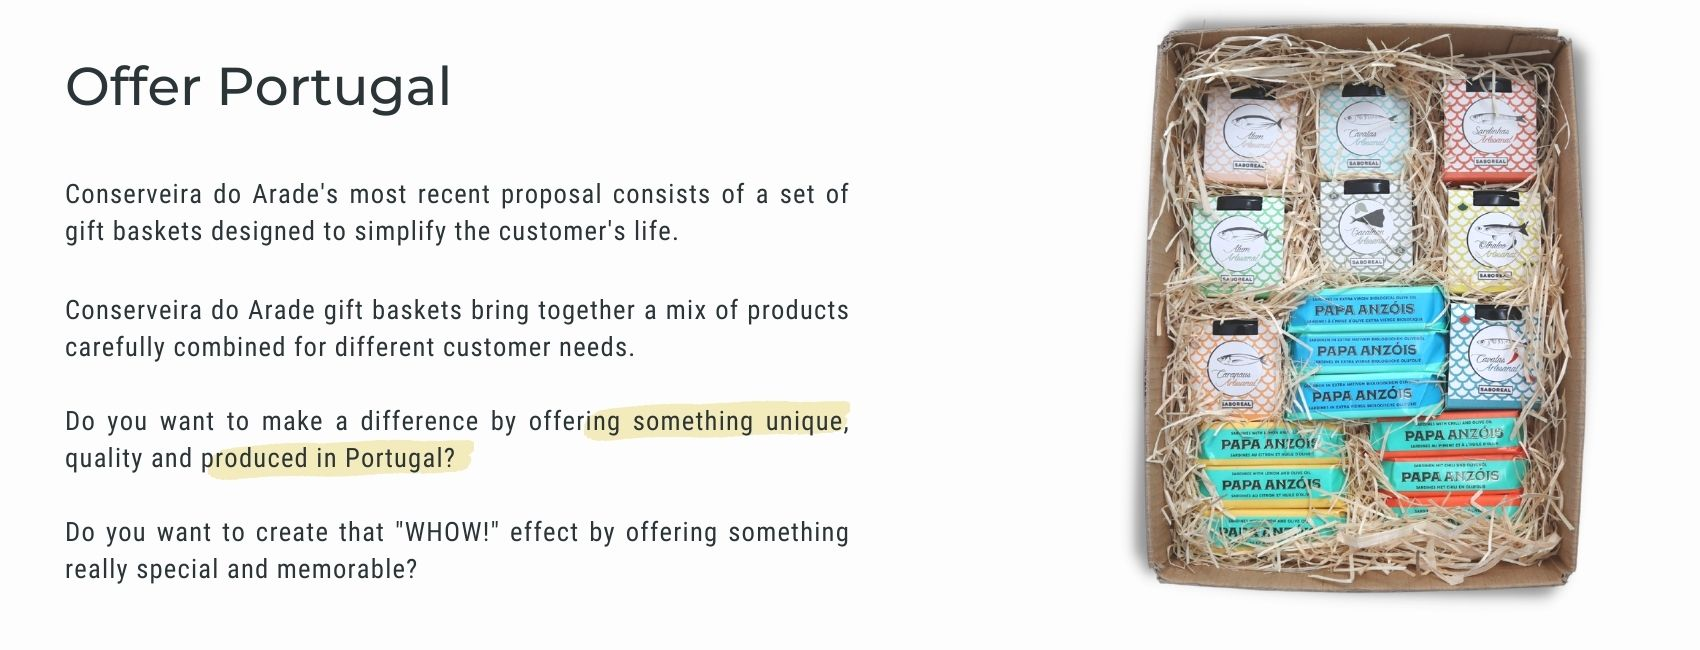 """Conserveira do Arade gift baskets bring together a mix of products carefully combined for different customer needs.  Do you want to make a difference by offering something unique, quality and produced in Portugal?  Do you want to create that """"WHOW!"""" effect by offering something really special and memorable?"""